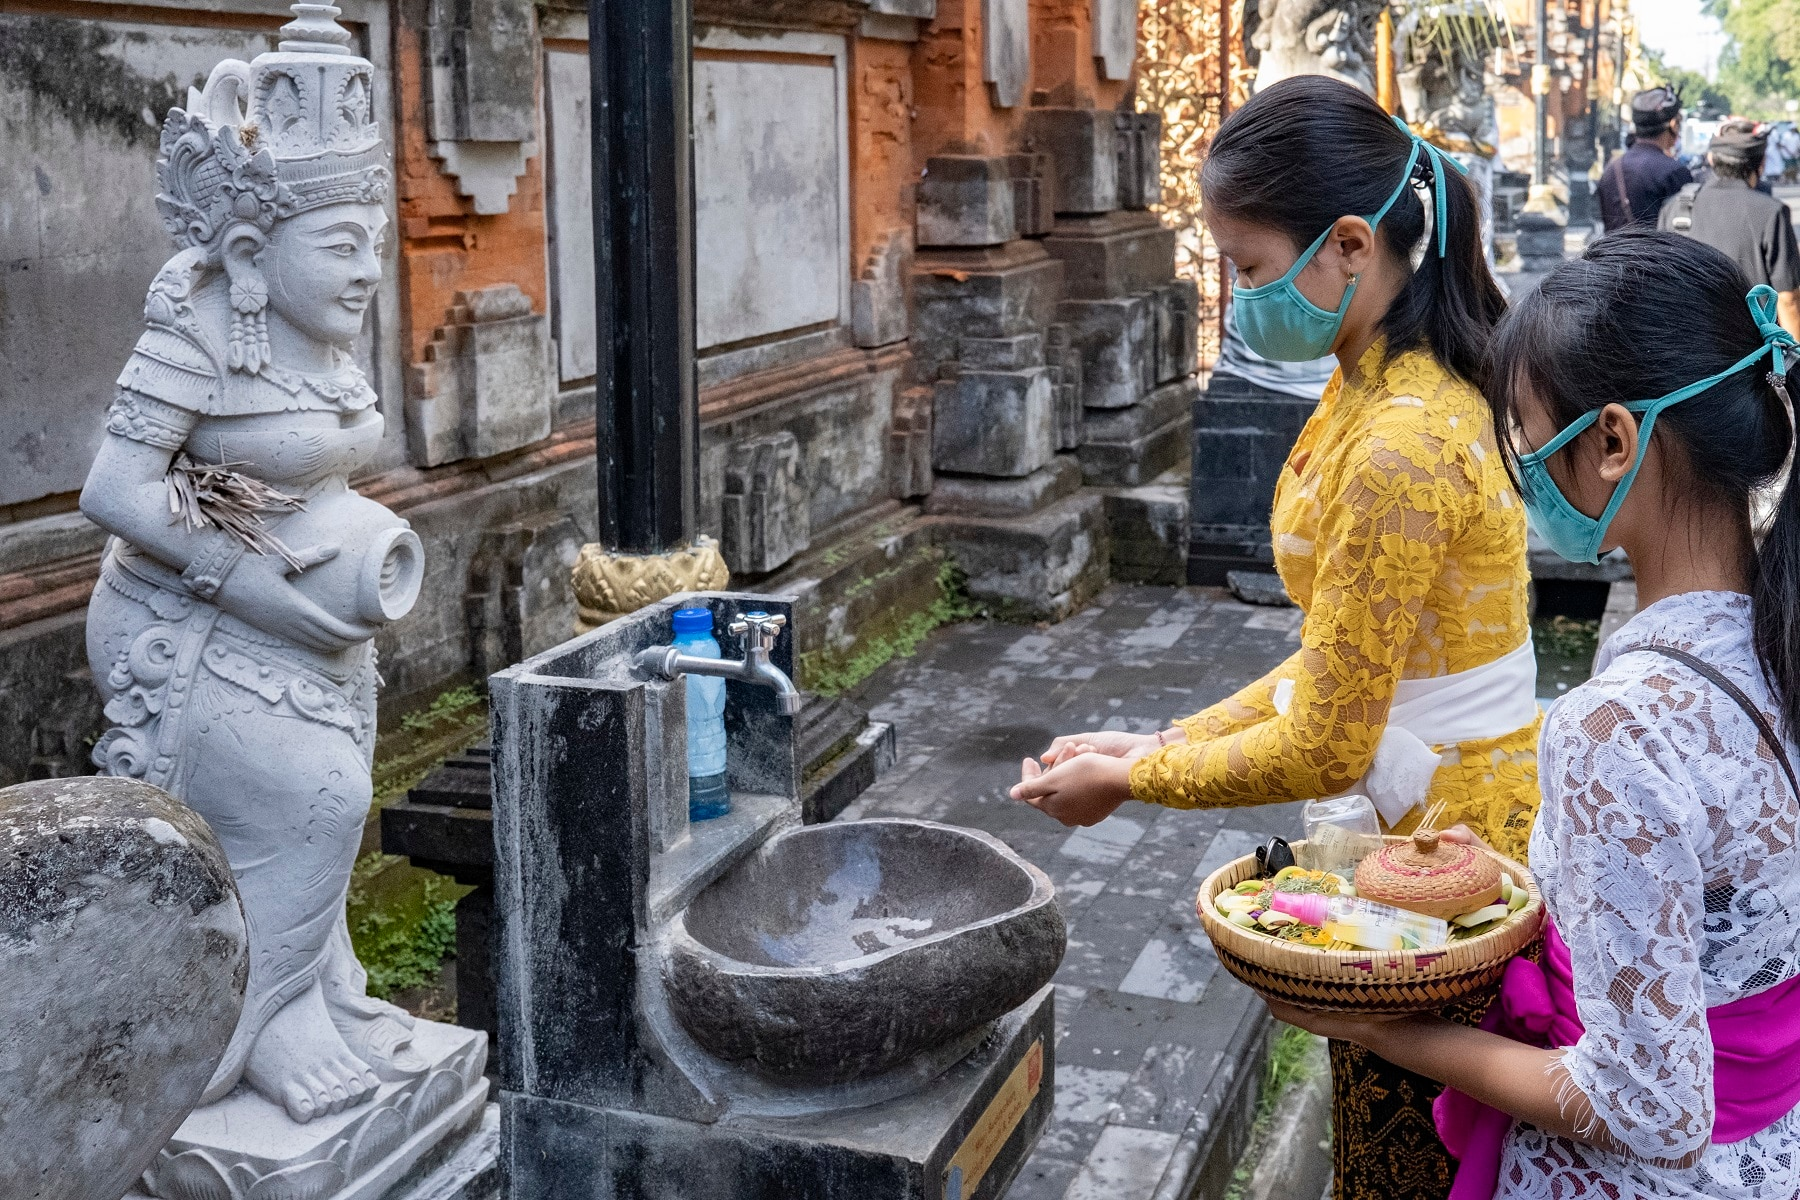 A Balinese woman washes her hands before entering a temple during Saraswati ceremony in Bali, Indonesia.